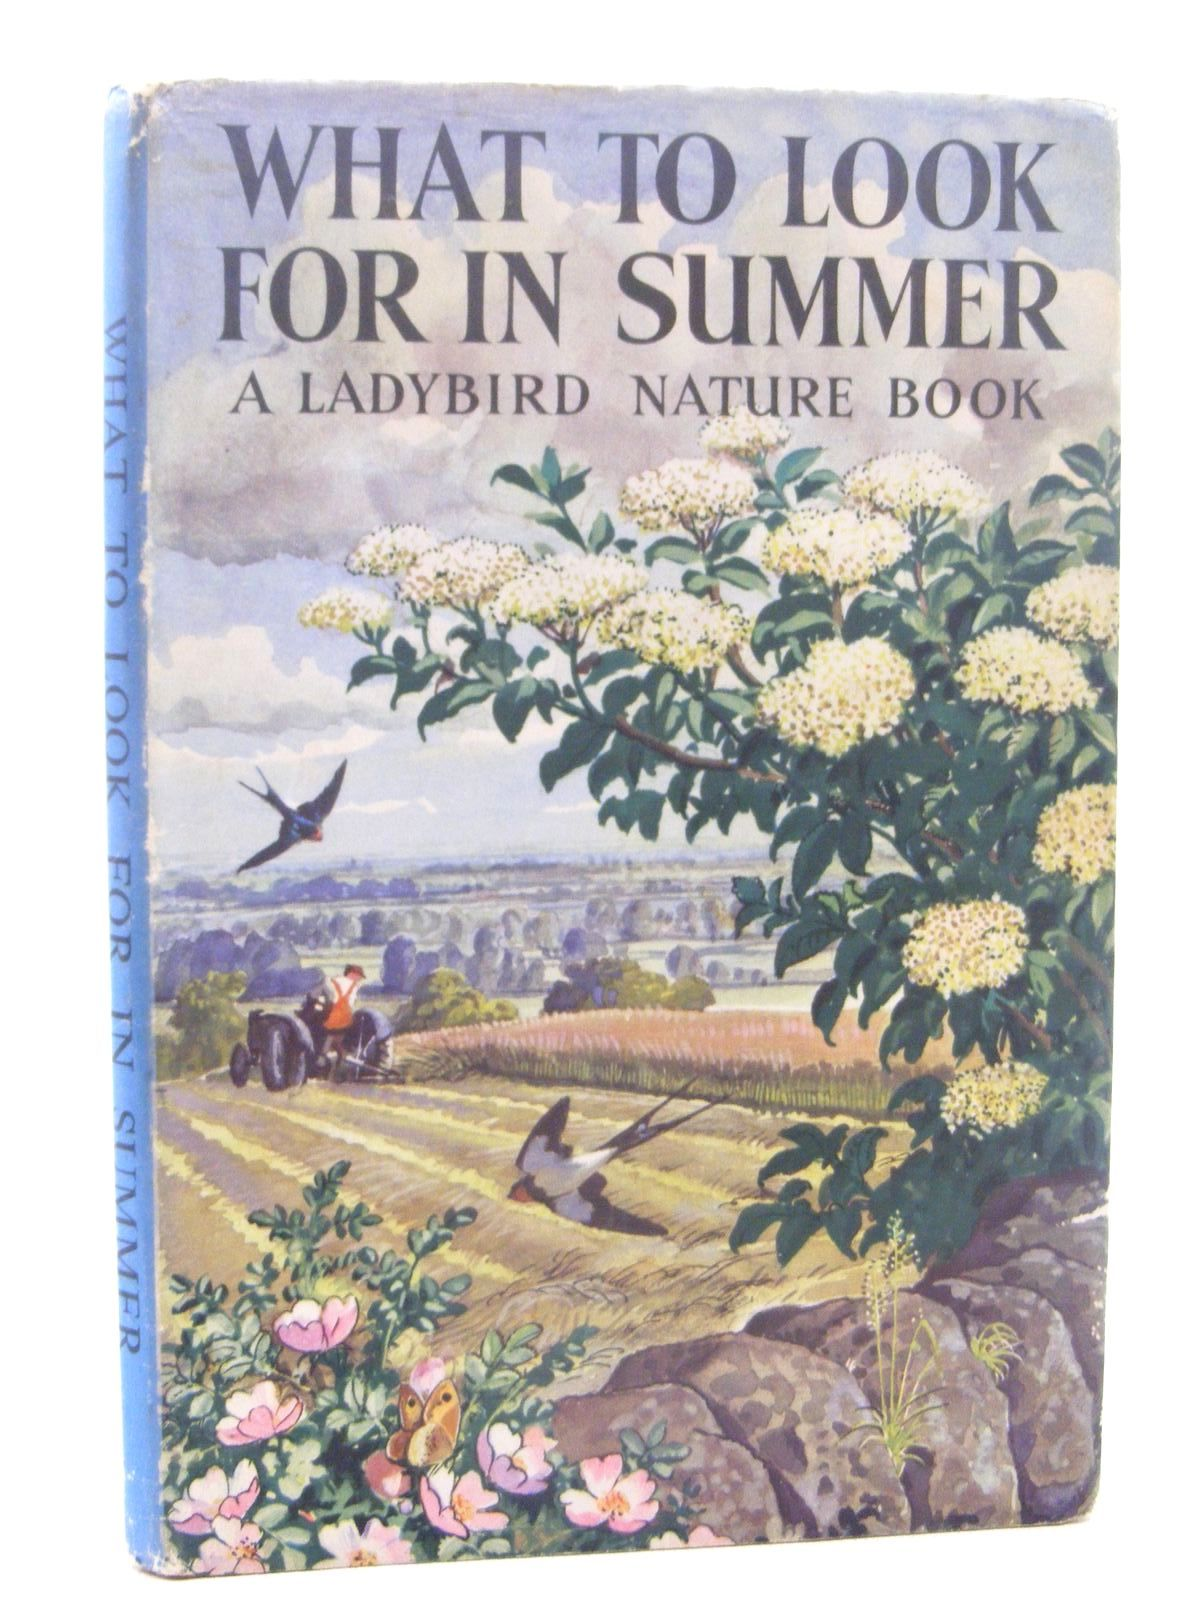 Photo of WHAT TO LOOK FOR IN SUMMER written by Watson, E.L. Grant illustrated by Tunnicliffe, C.F. published by Wills & Hepworth Ltd. (STOCK CODE: 2124839)  for sale by Stella & Rose's Books